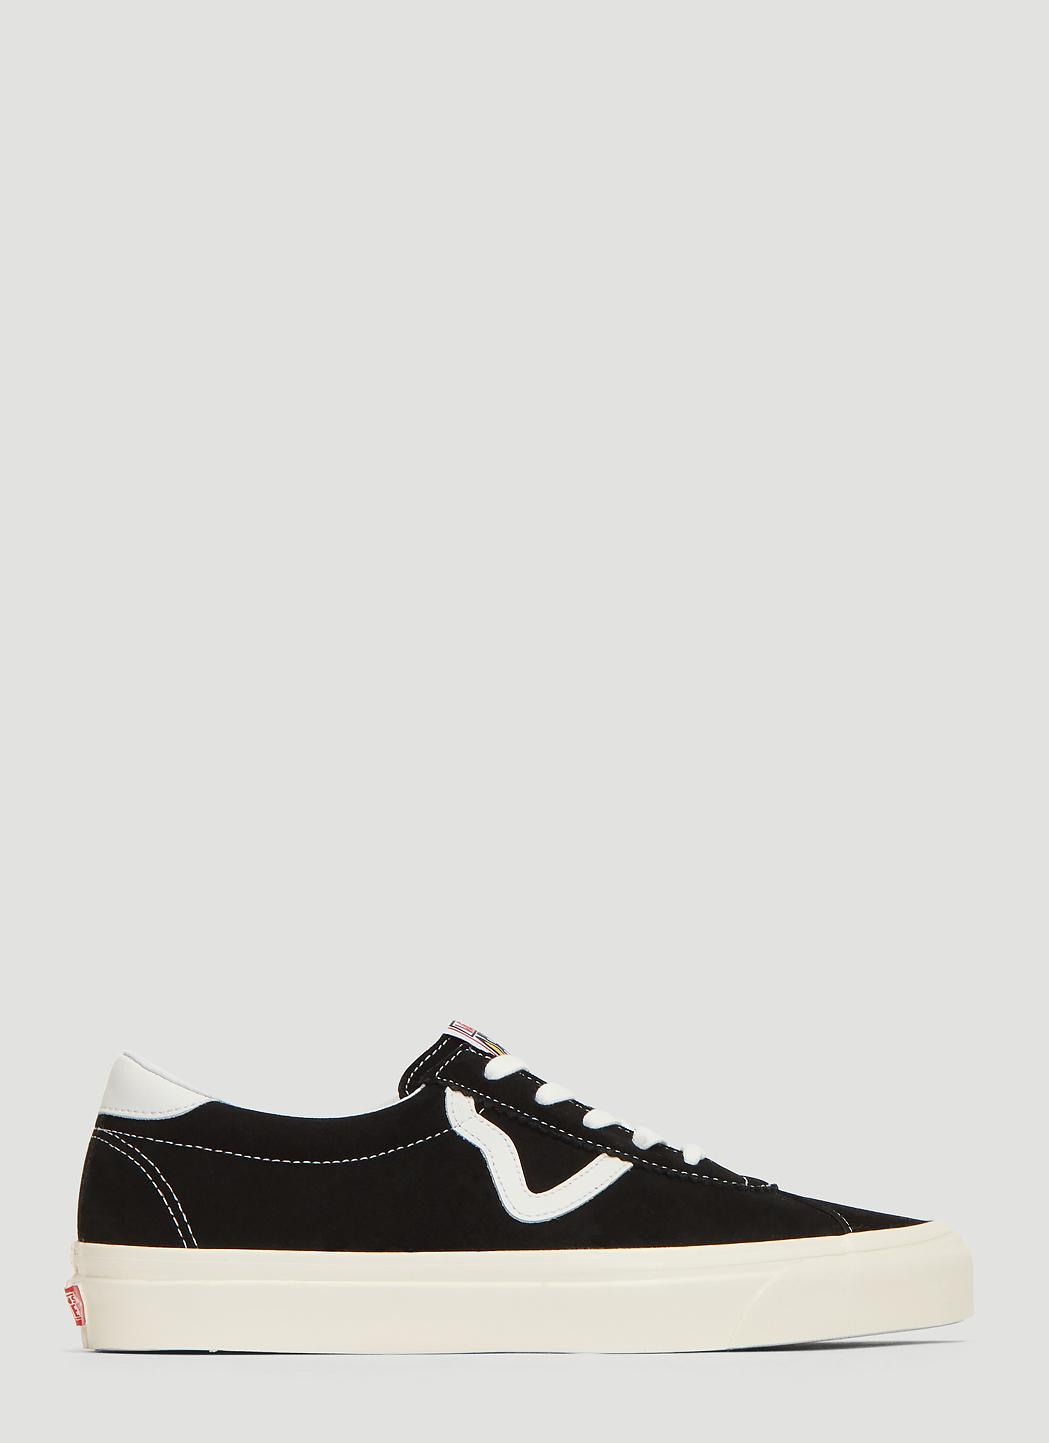 597b454a2a59 Lyst - Vans Style 73 Dx Anaheim Factory Sneakers In Black in Black ...